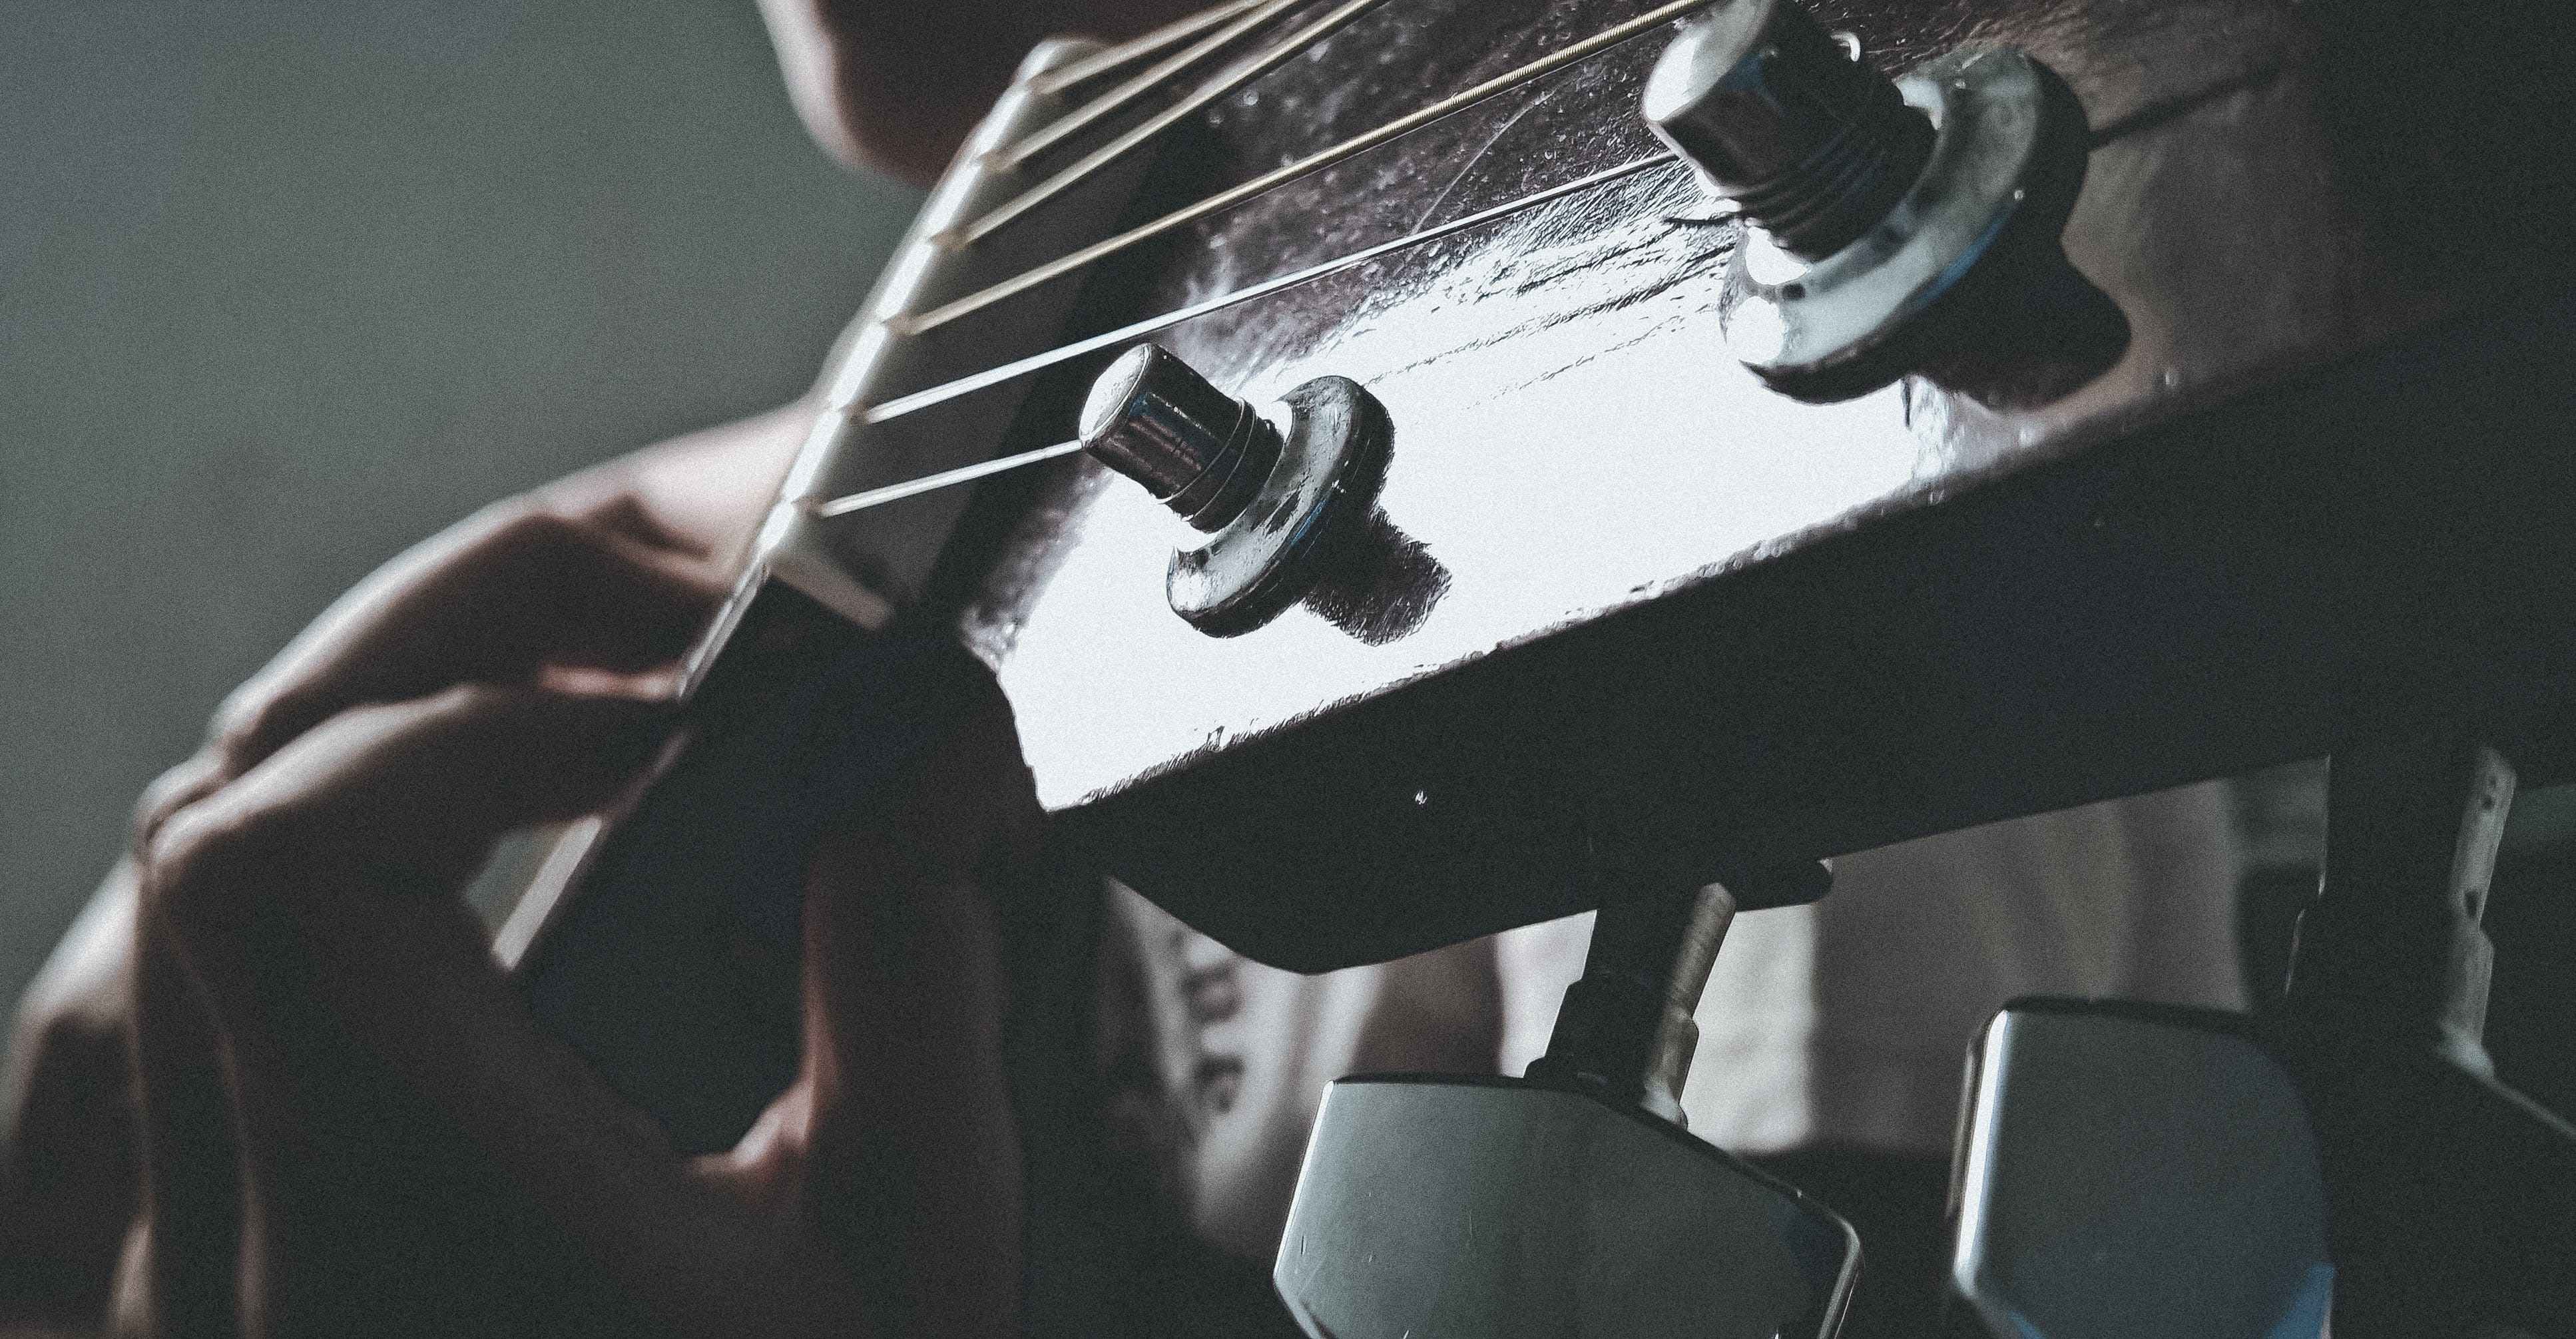 Free stock photo of girl, guitar strings